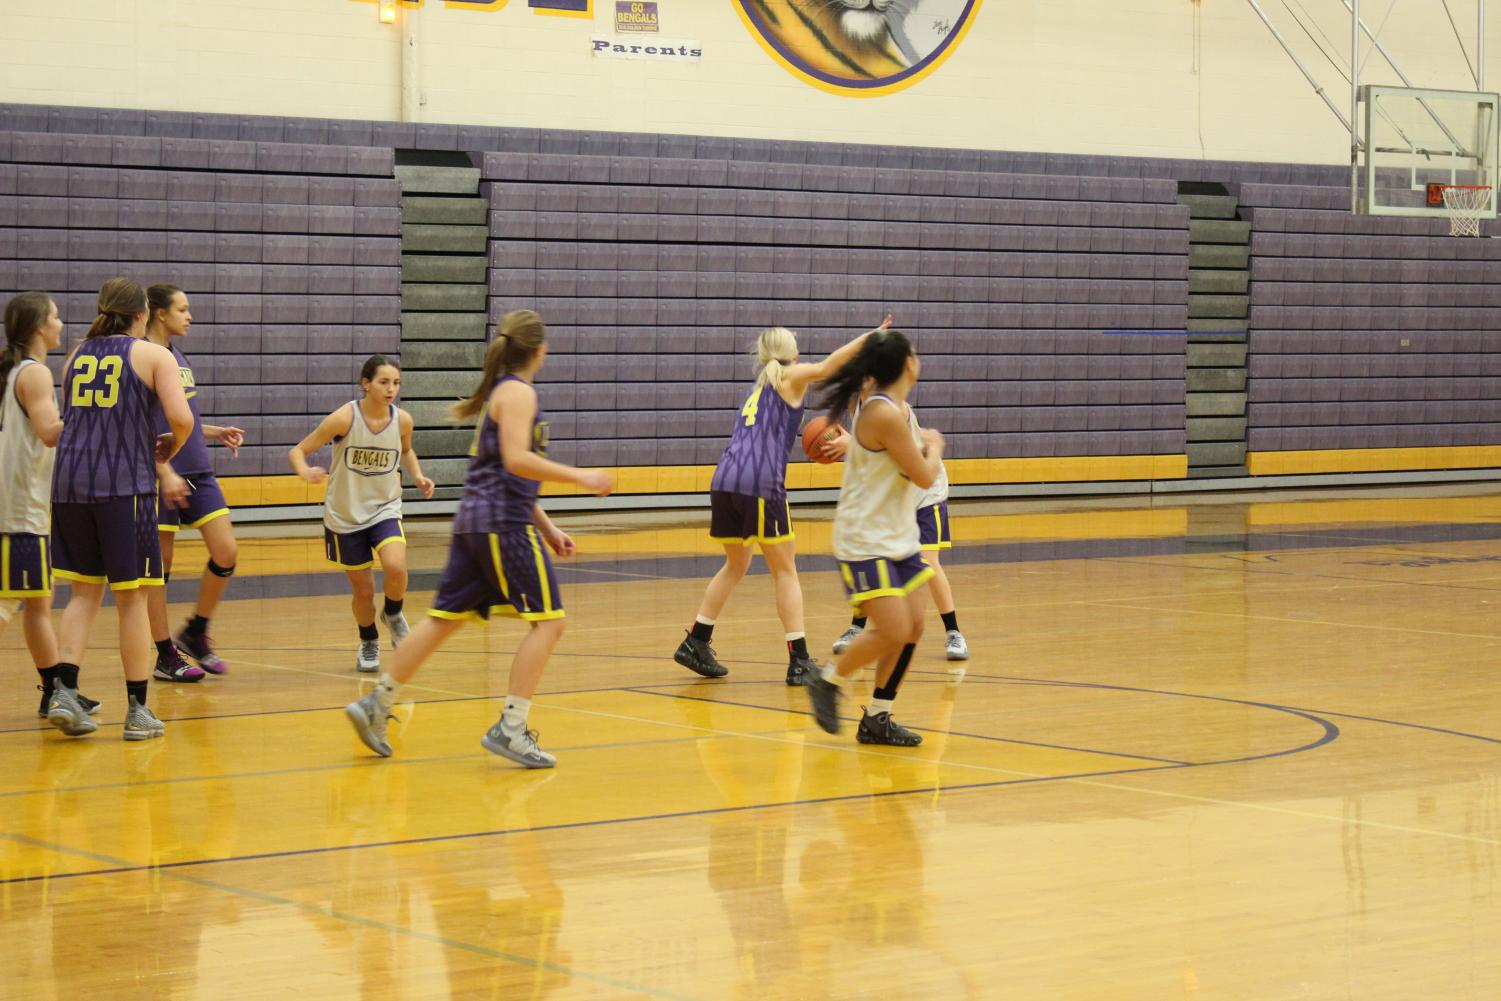 LHS girls varsity practice for upcoming game.